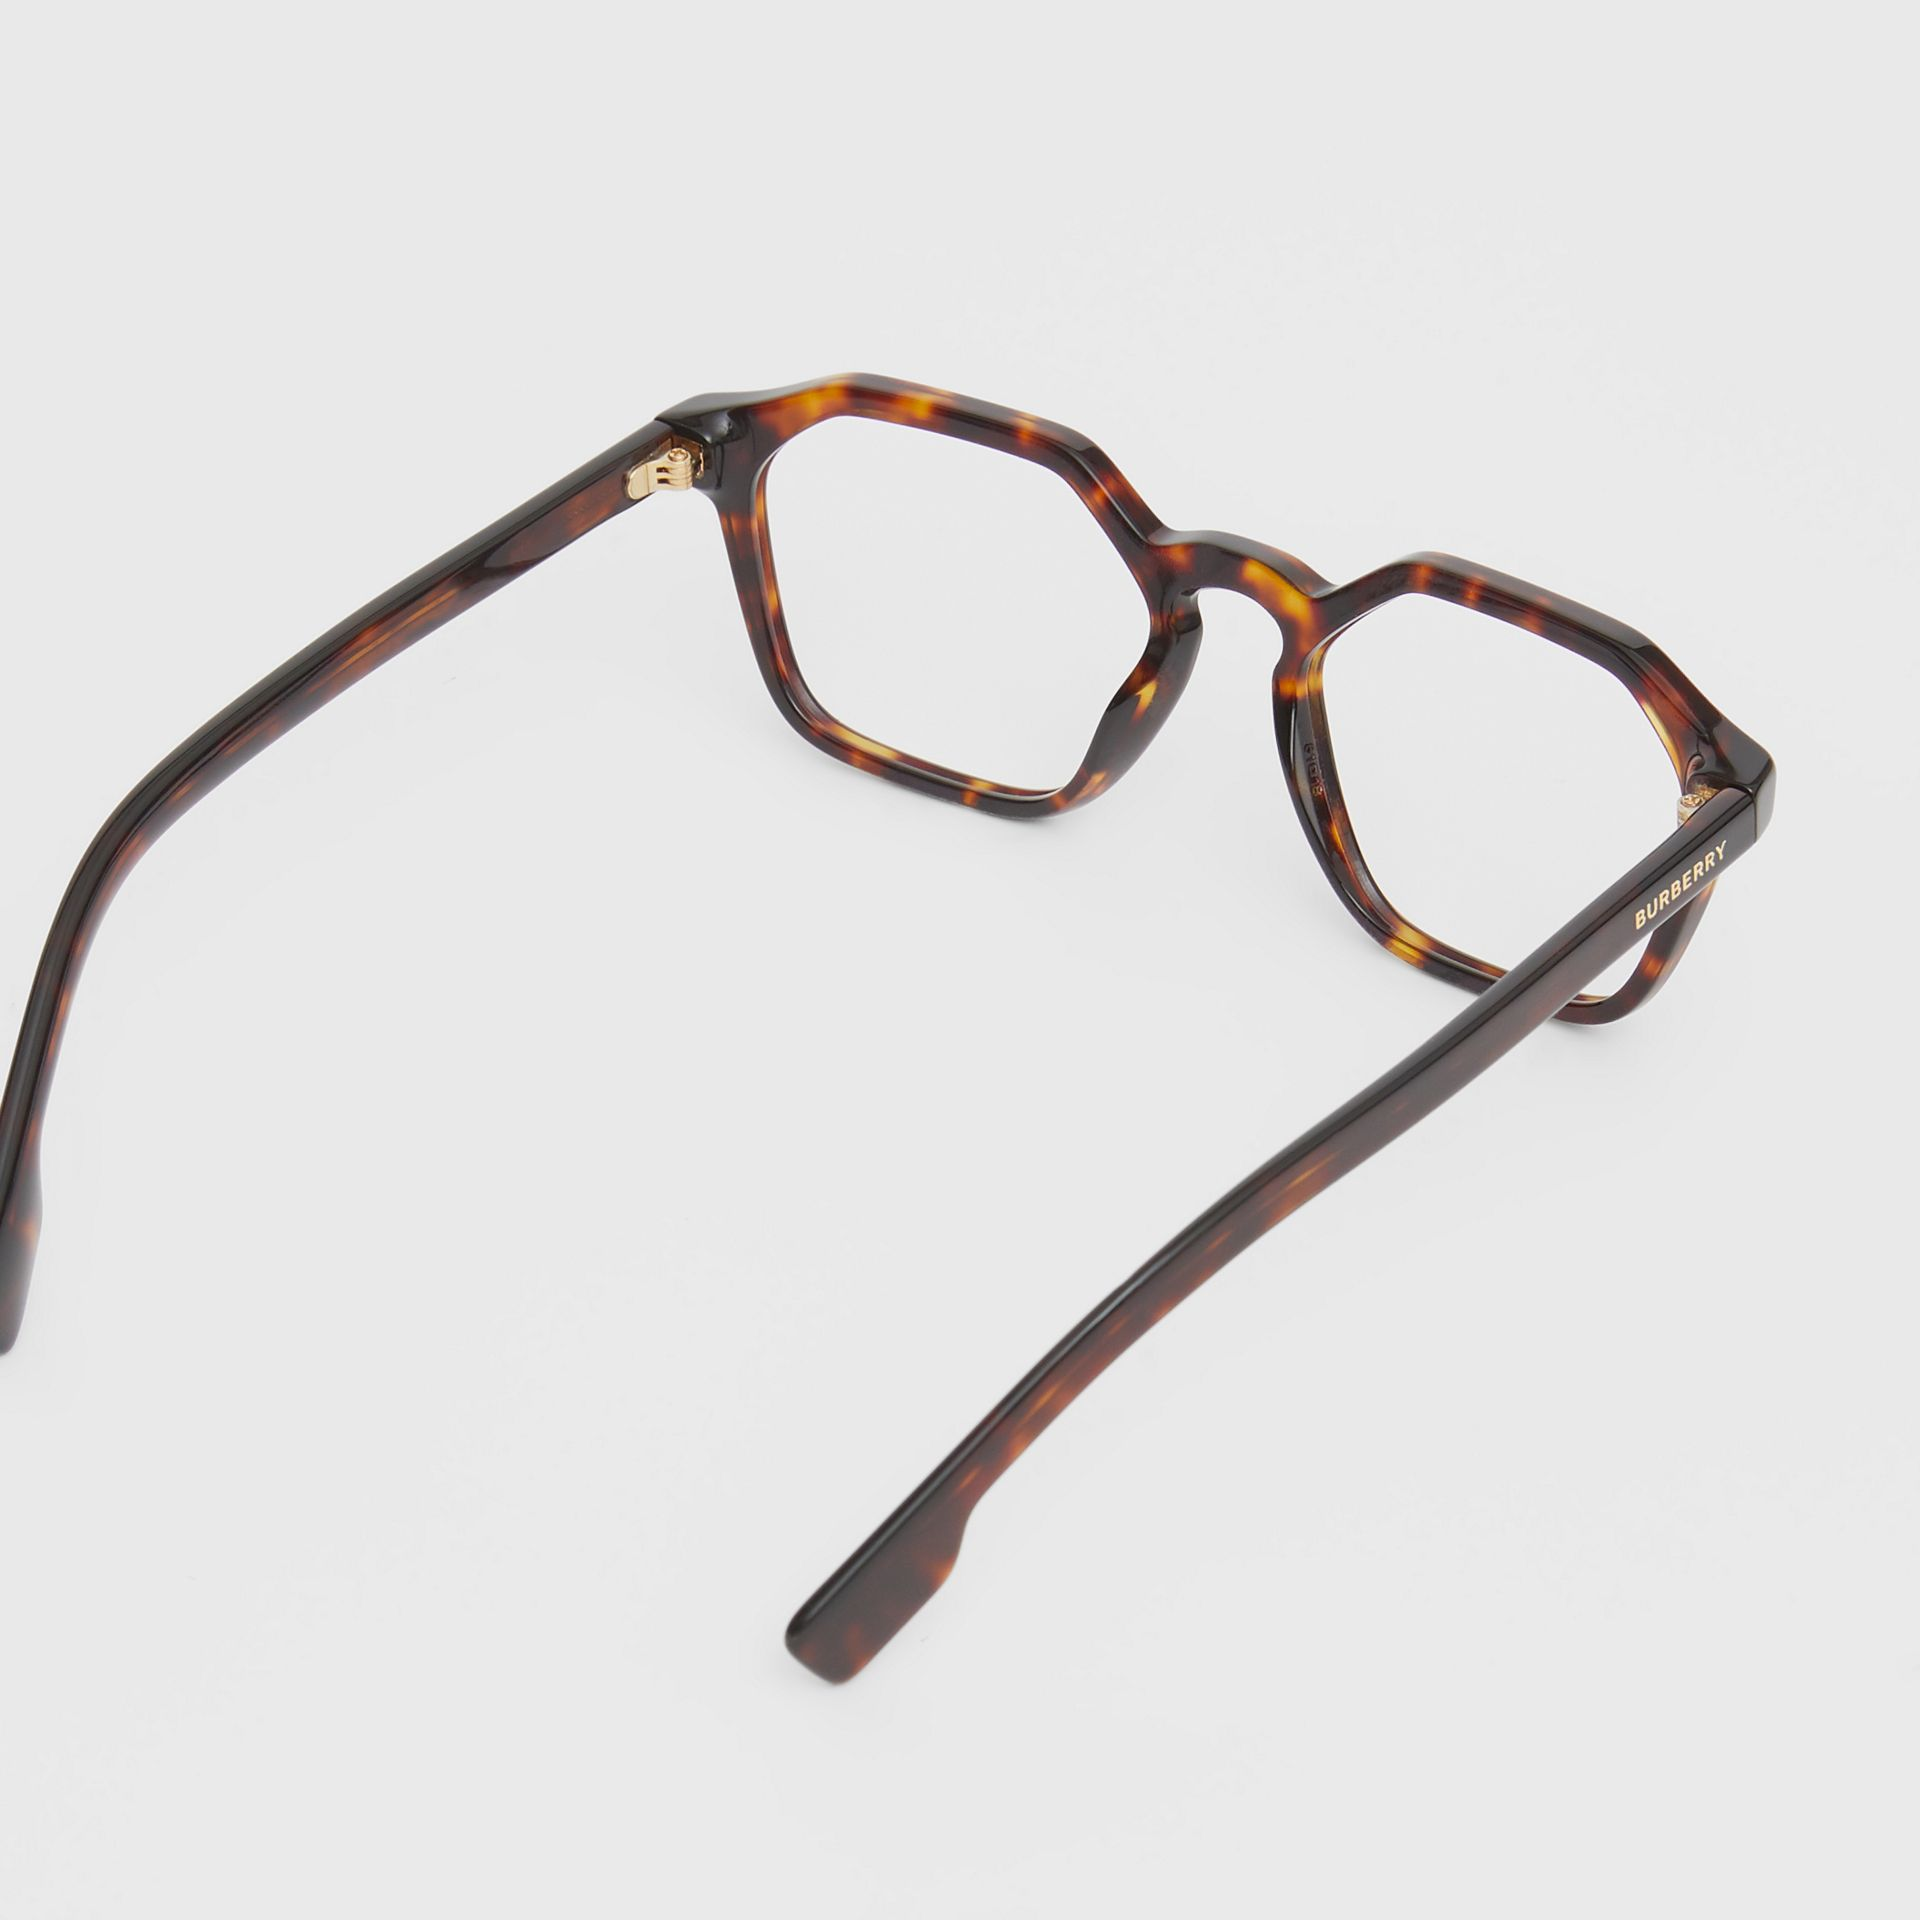 Geometric Optical Frames in Tortoiseshell - Women | Burberry United Kingdom - gallery image 3